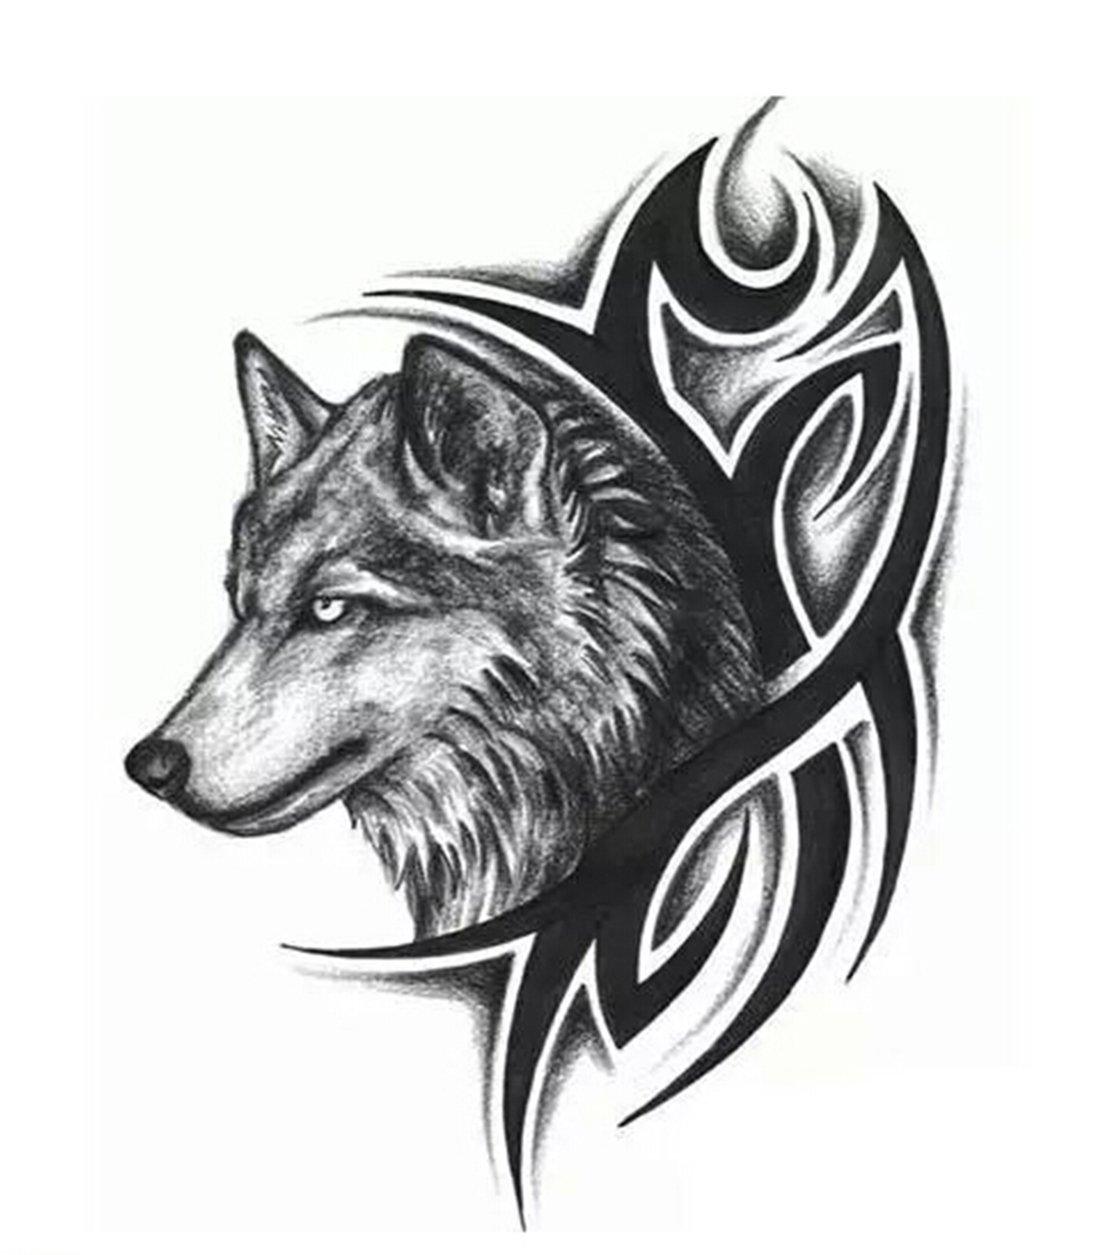 Temporary tattoo for girls men women 3d wolf sticker size 19x12cm 1pc